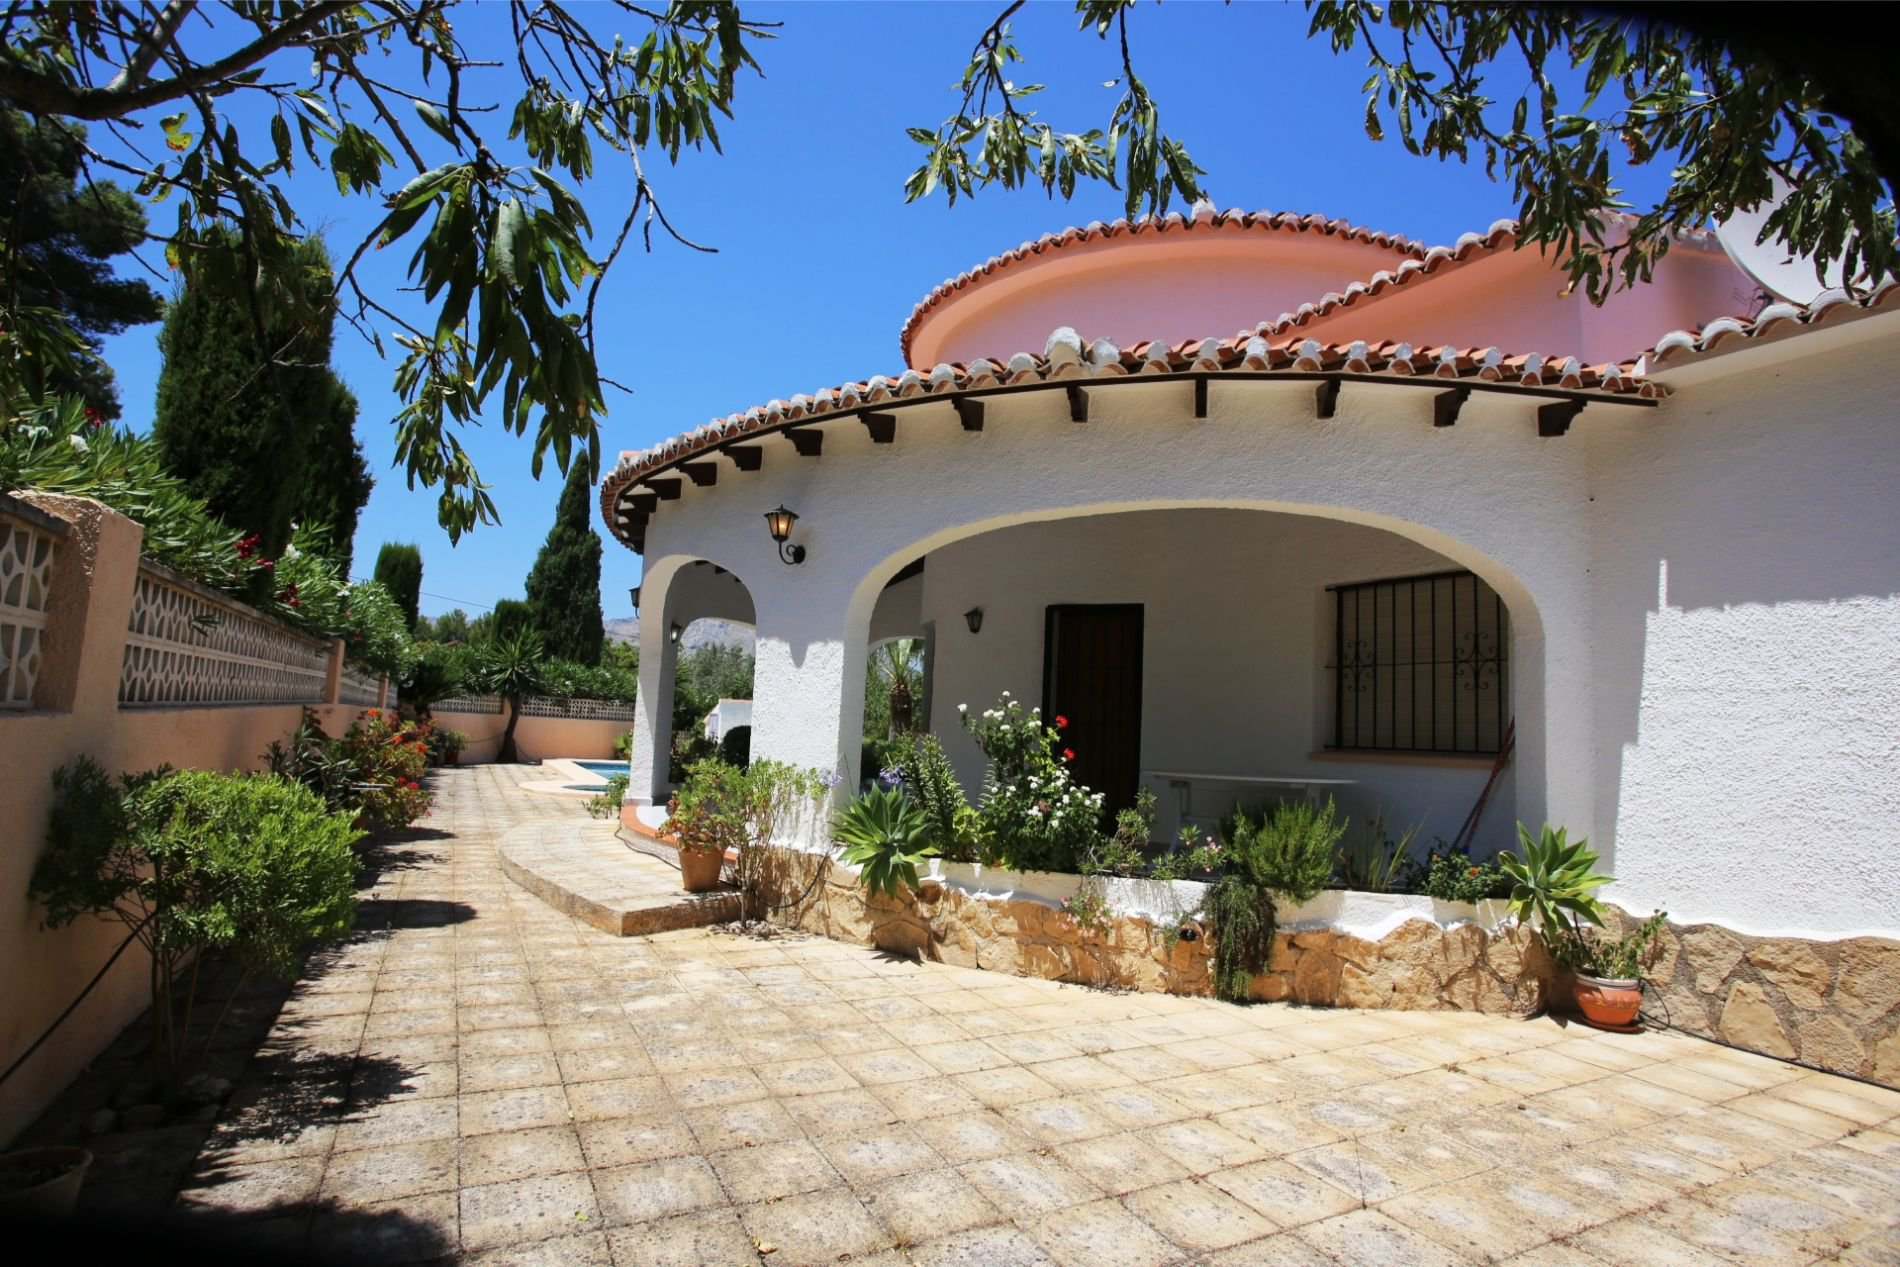 Charming, peaceful and tranquil villa in Parcent